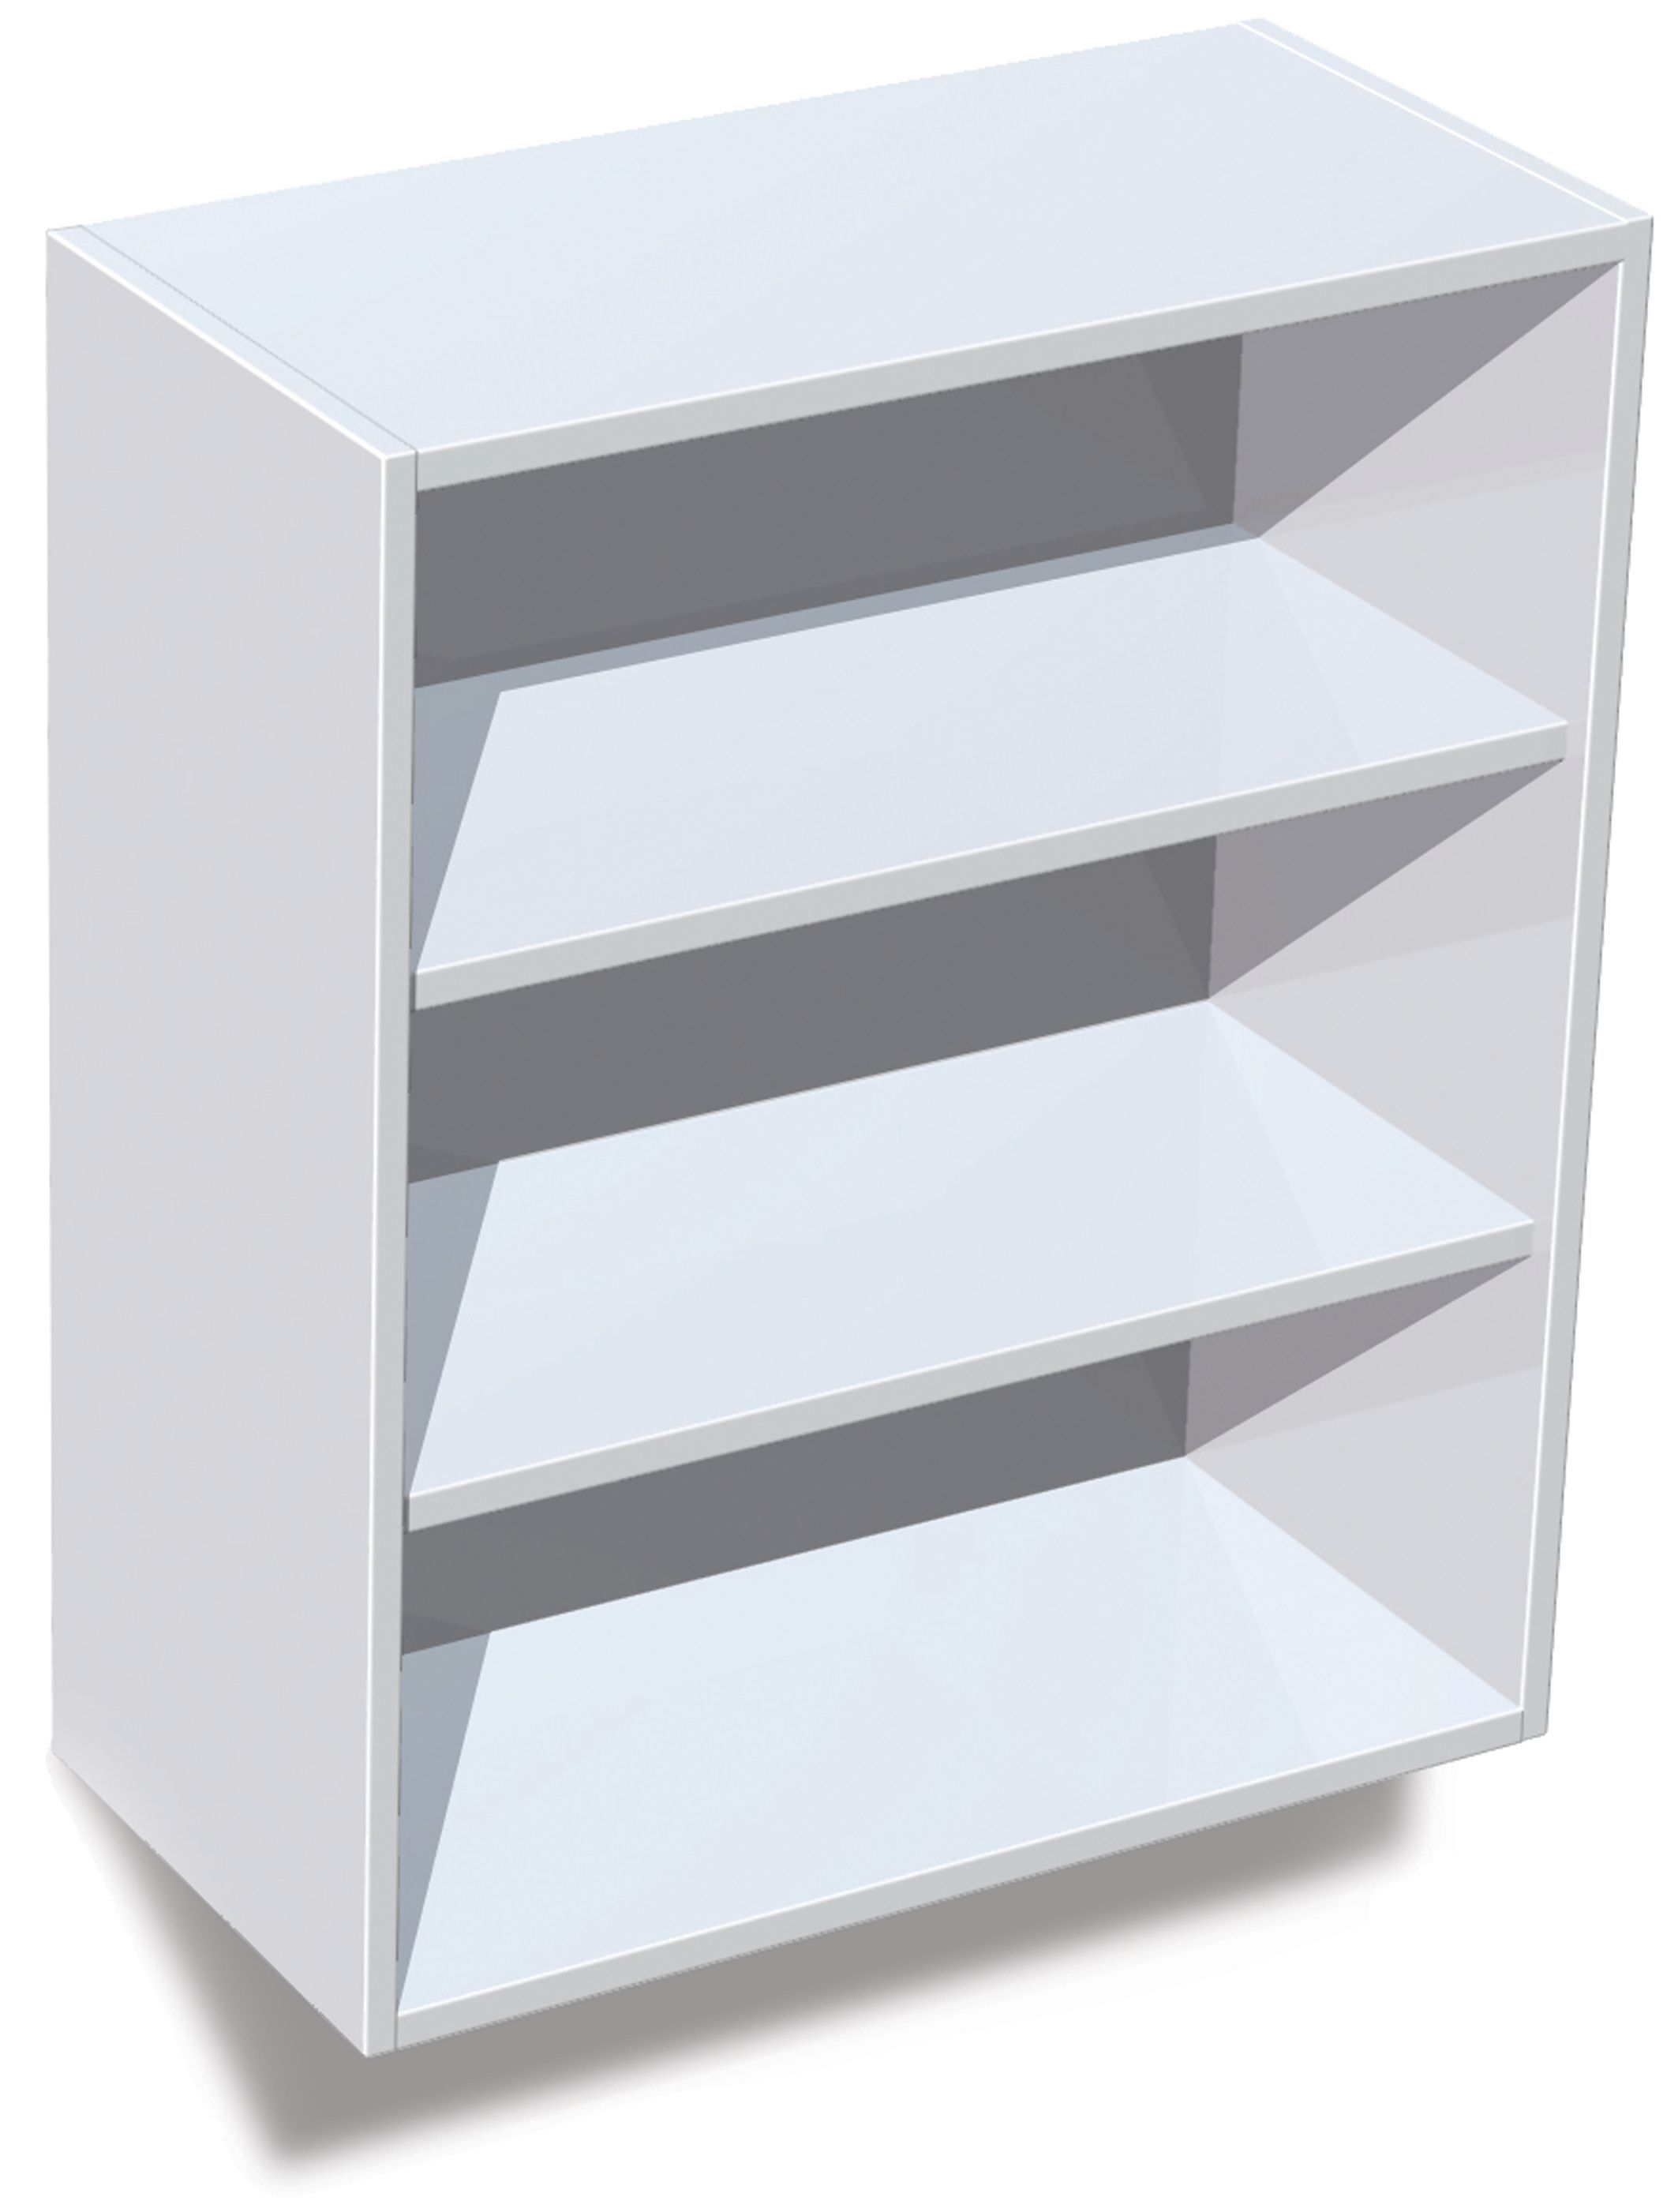 It Kitchens White Standard Wall Cabinet W 600mm